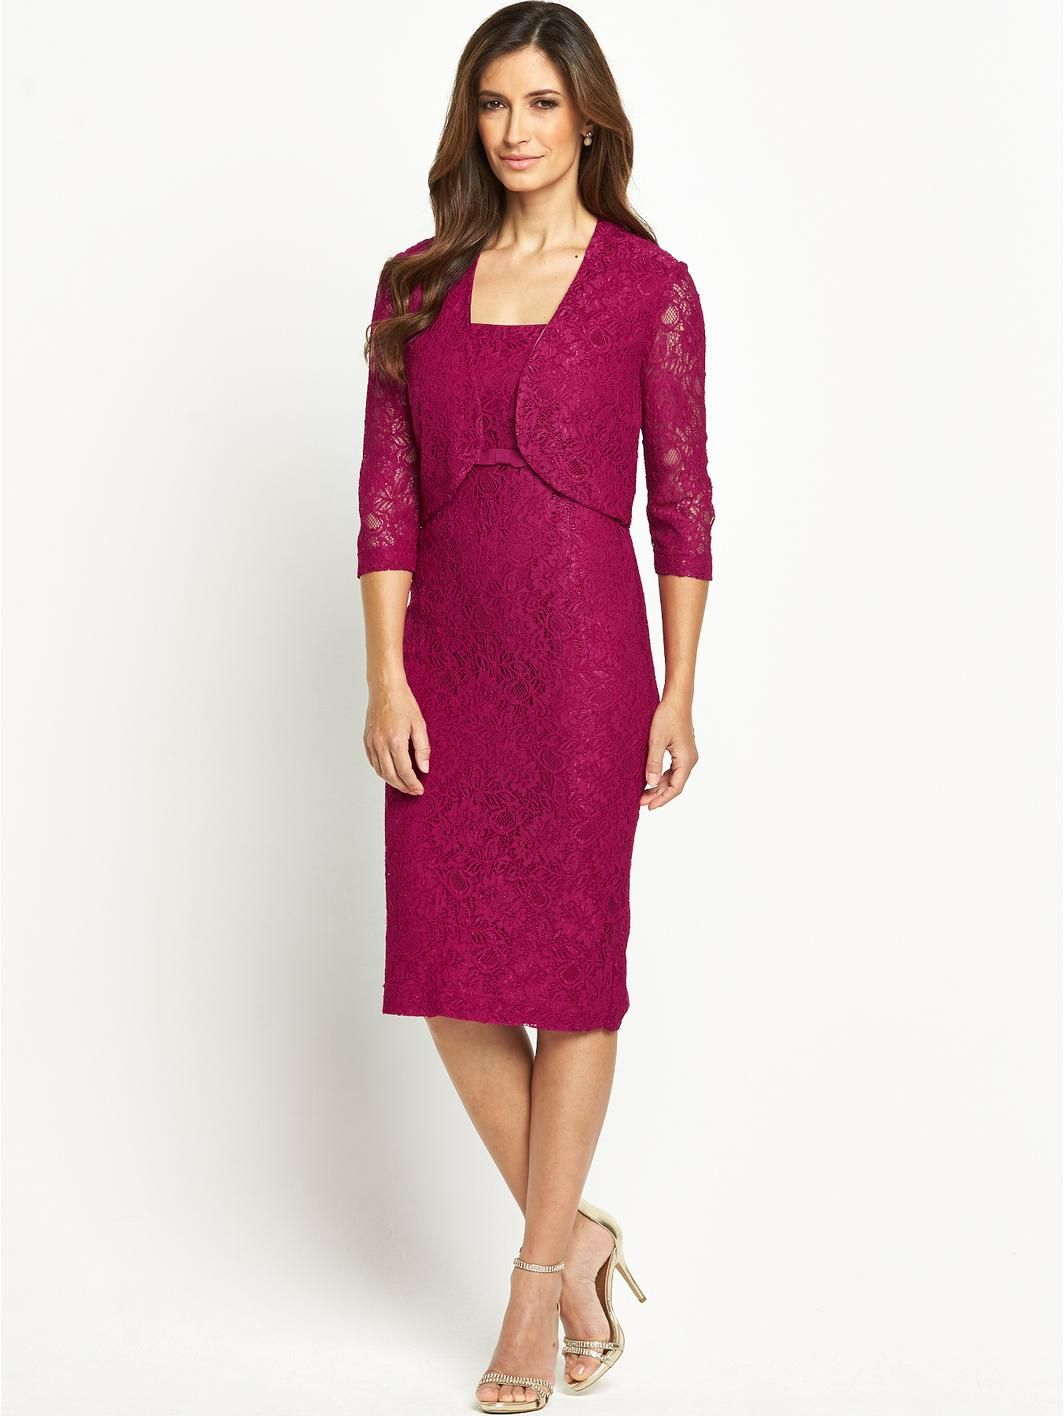 Lace Bodice Dress and Jacket Set, http://www.very.co.uk/berkertex ...